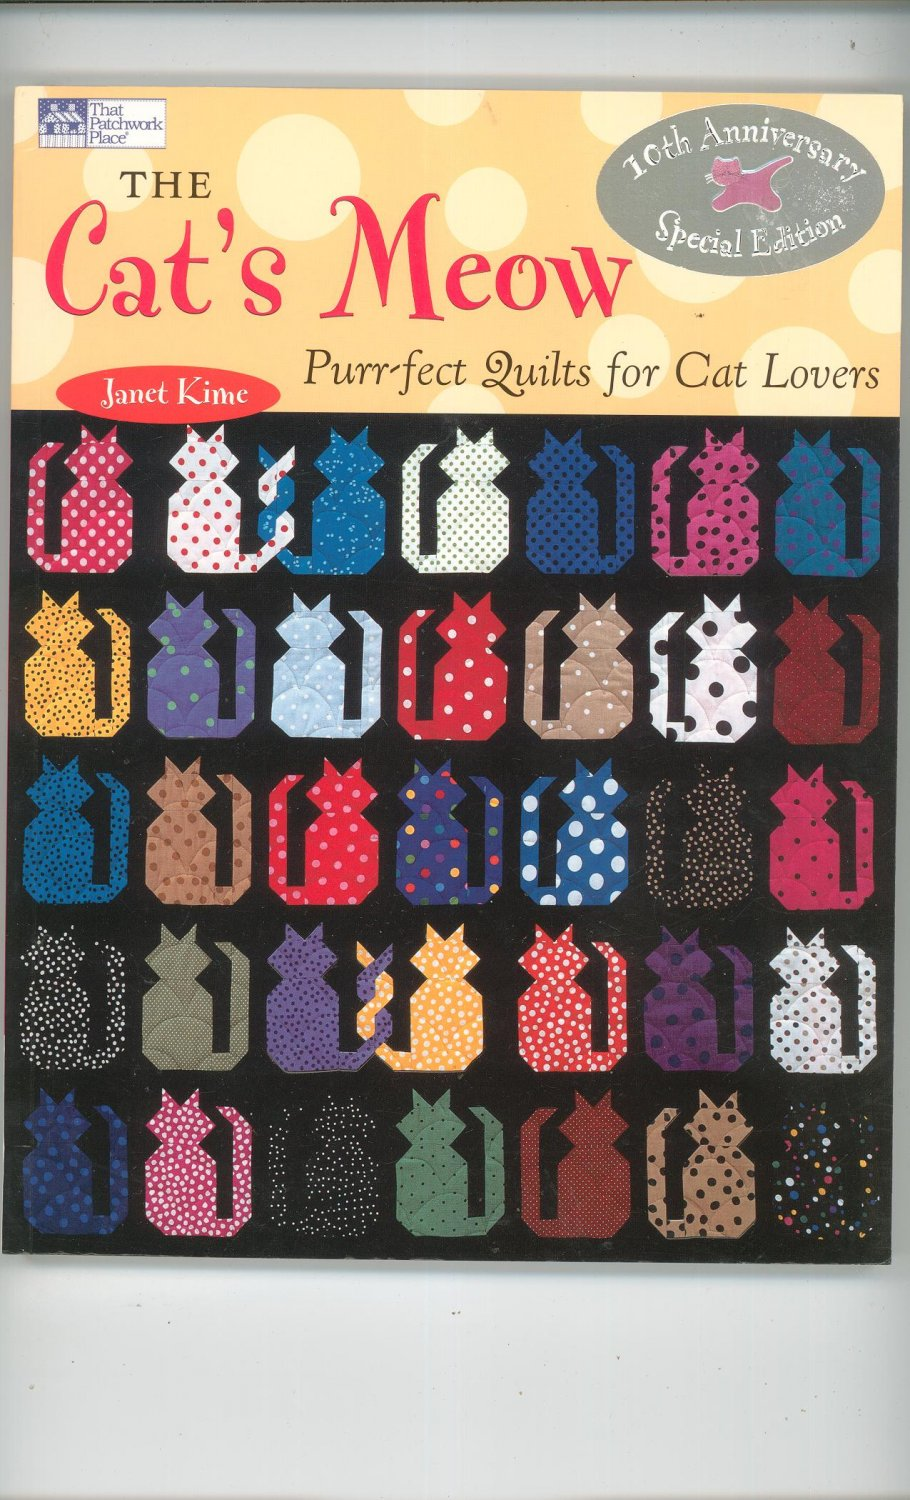 The Cat's Meow By Janet Kime Purr-fect Quilts 10th Anniversary Special Edition 1564775674